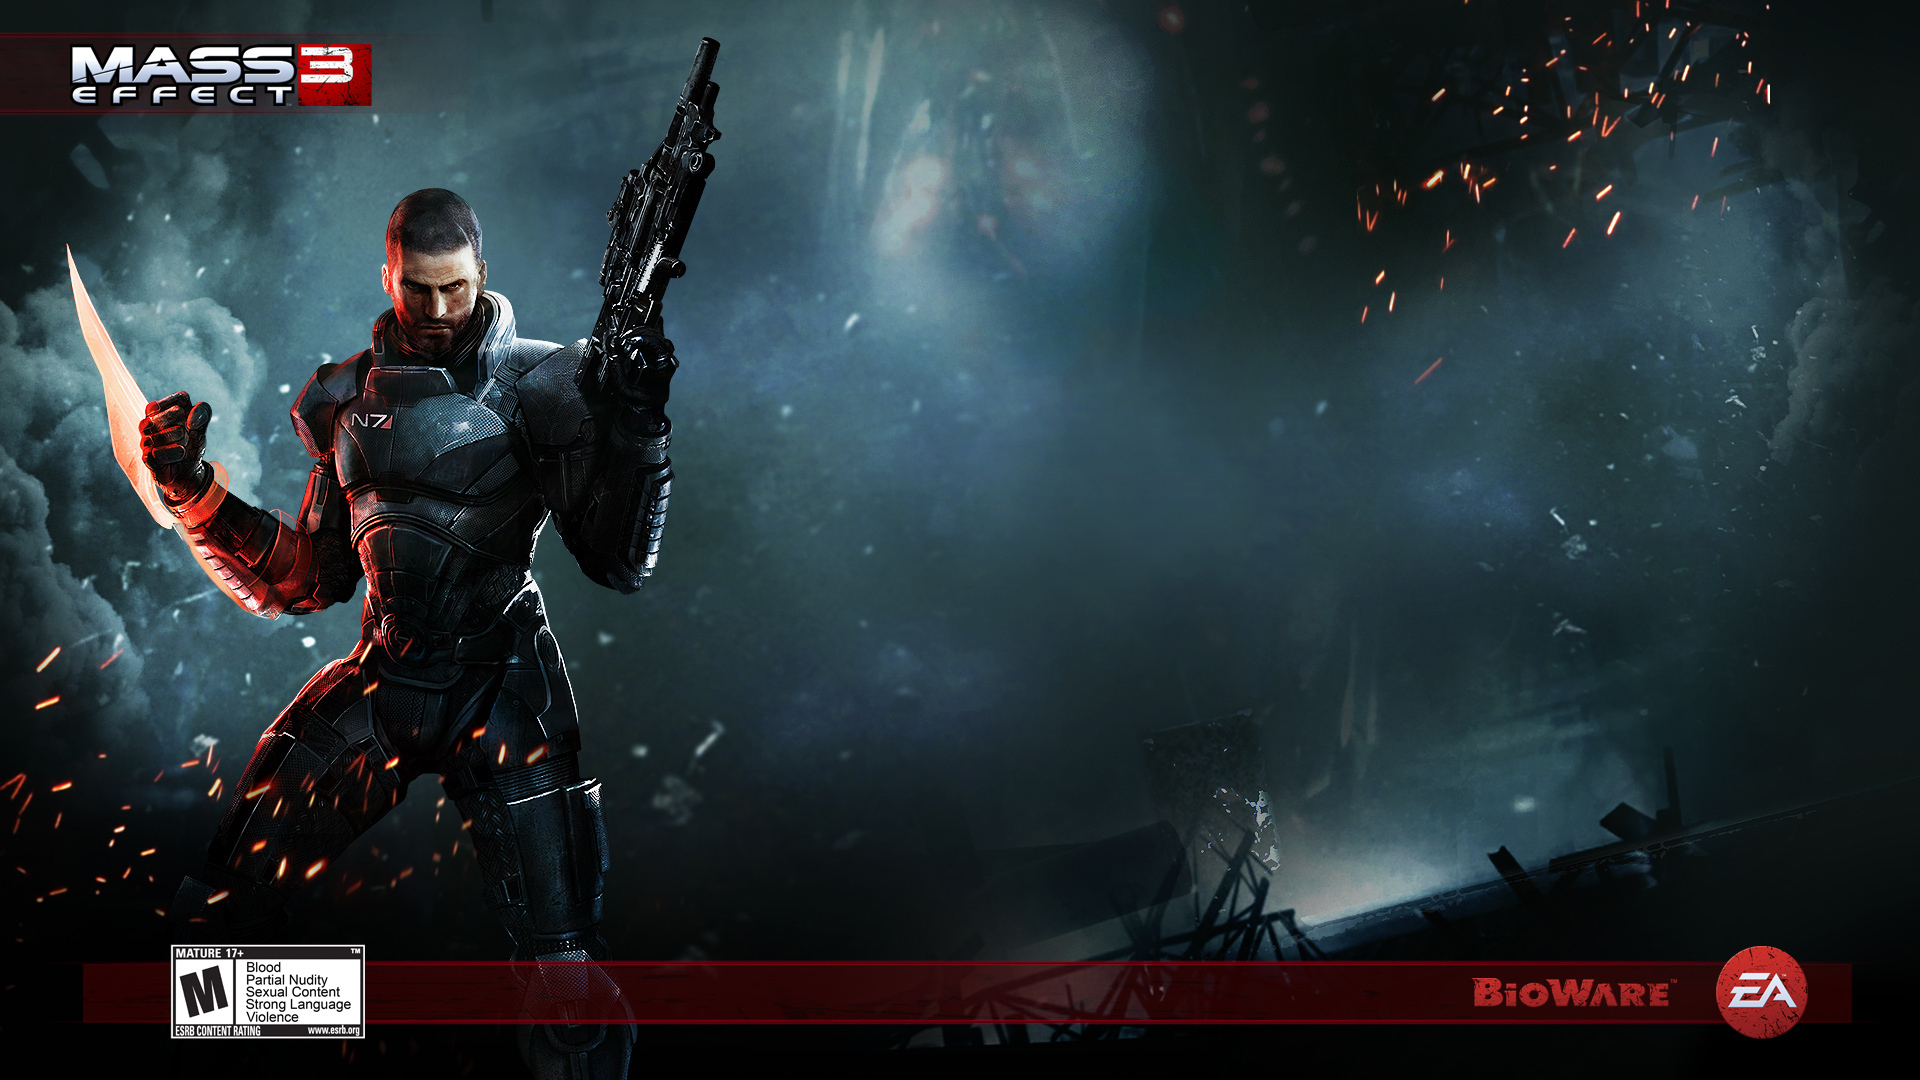 Action Game Mass Effect 3 Wallpapers HD Wallpapers 1920x1080